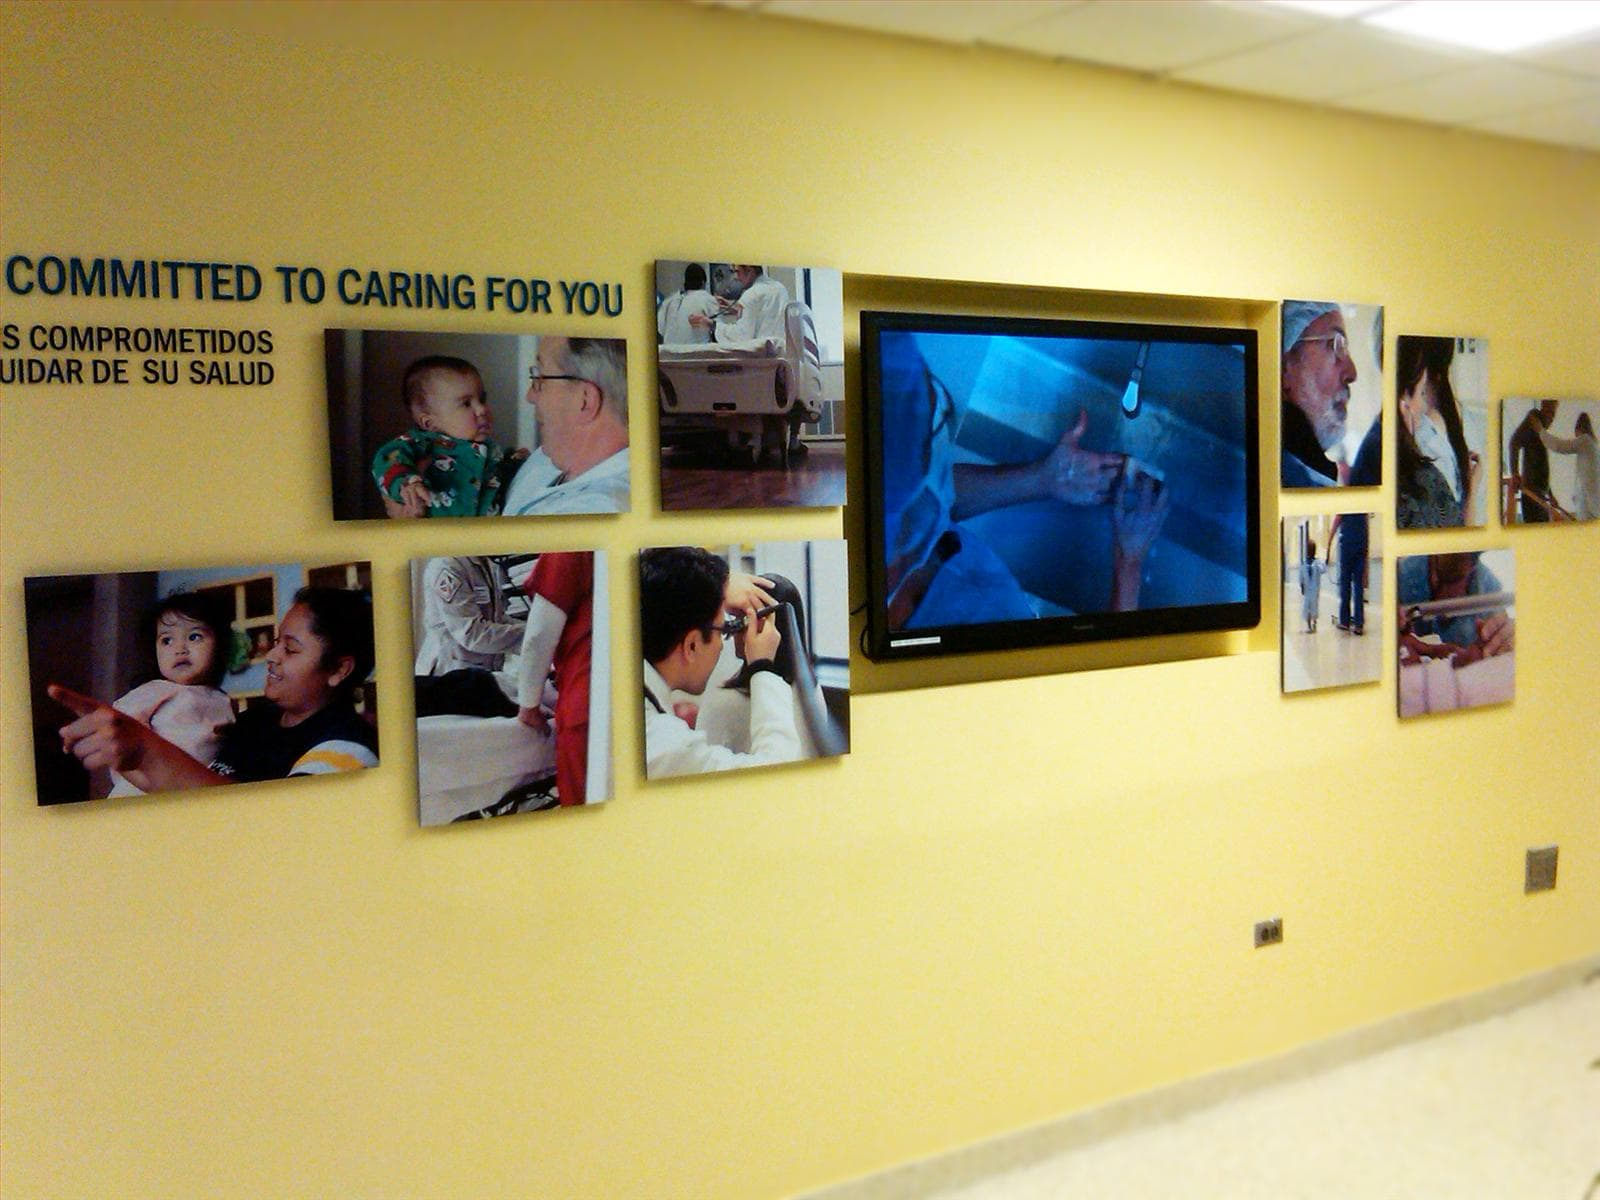 Committed to Caring for You Wall Graphics